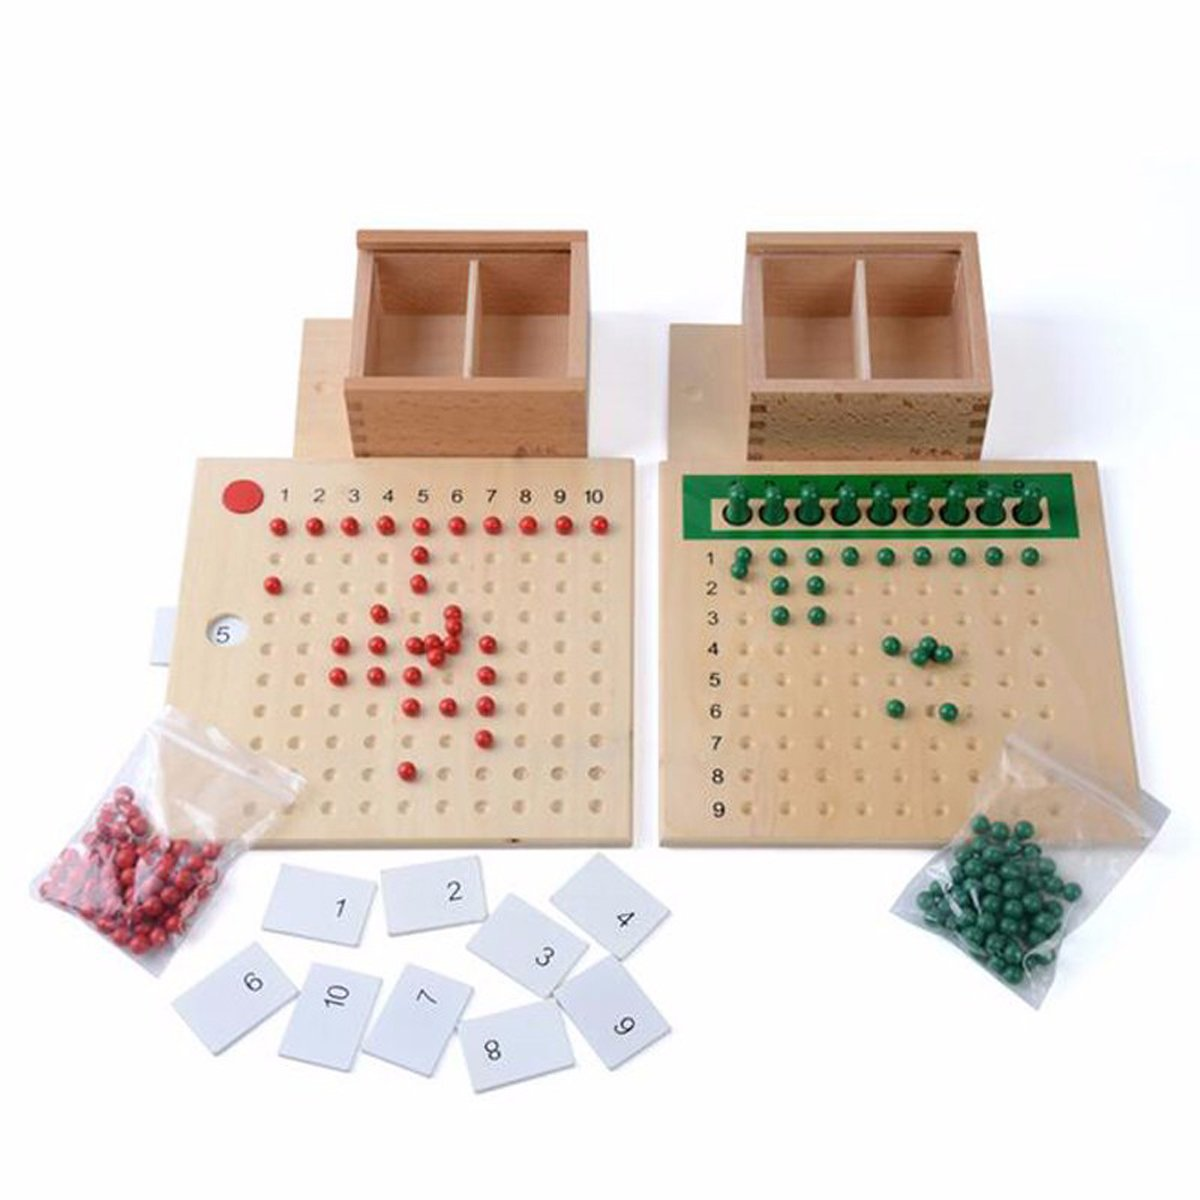 Montessori Material Boxed Arithmatics Teaching Aids Educational Wooden Toys For Children Learning Multiplication and Division Mathematics Tools